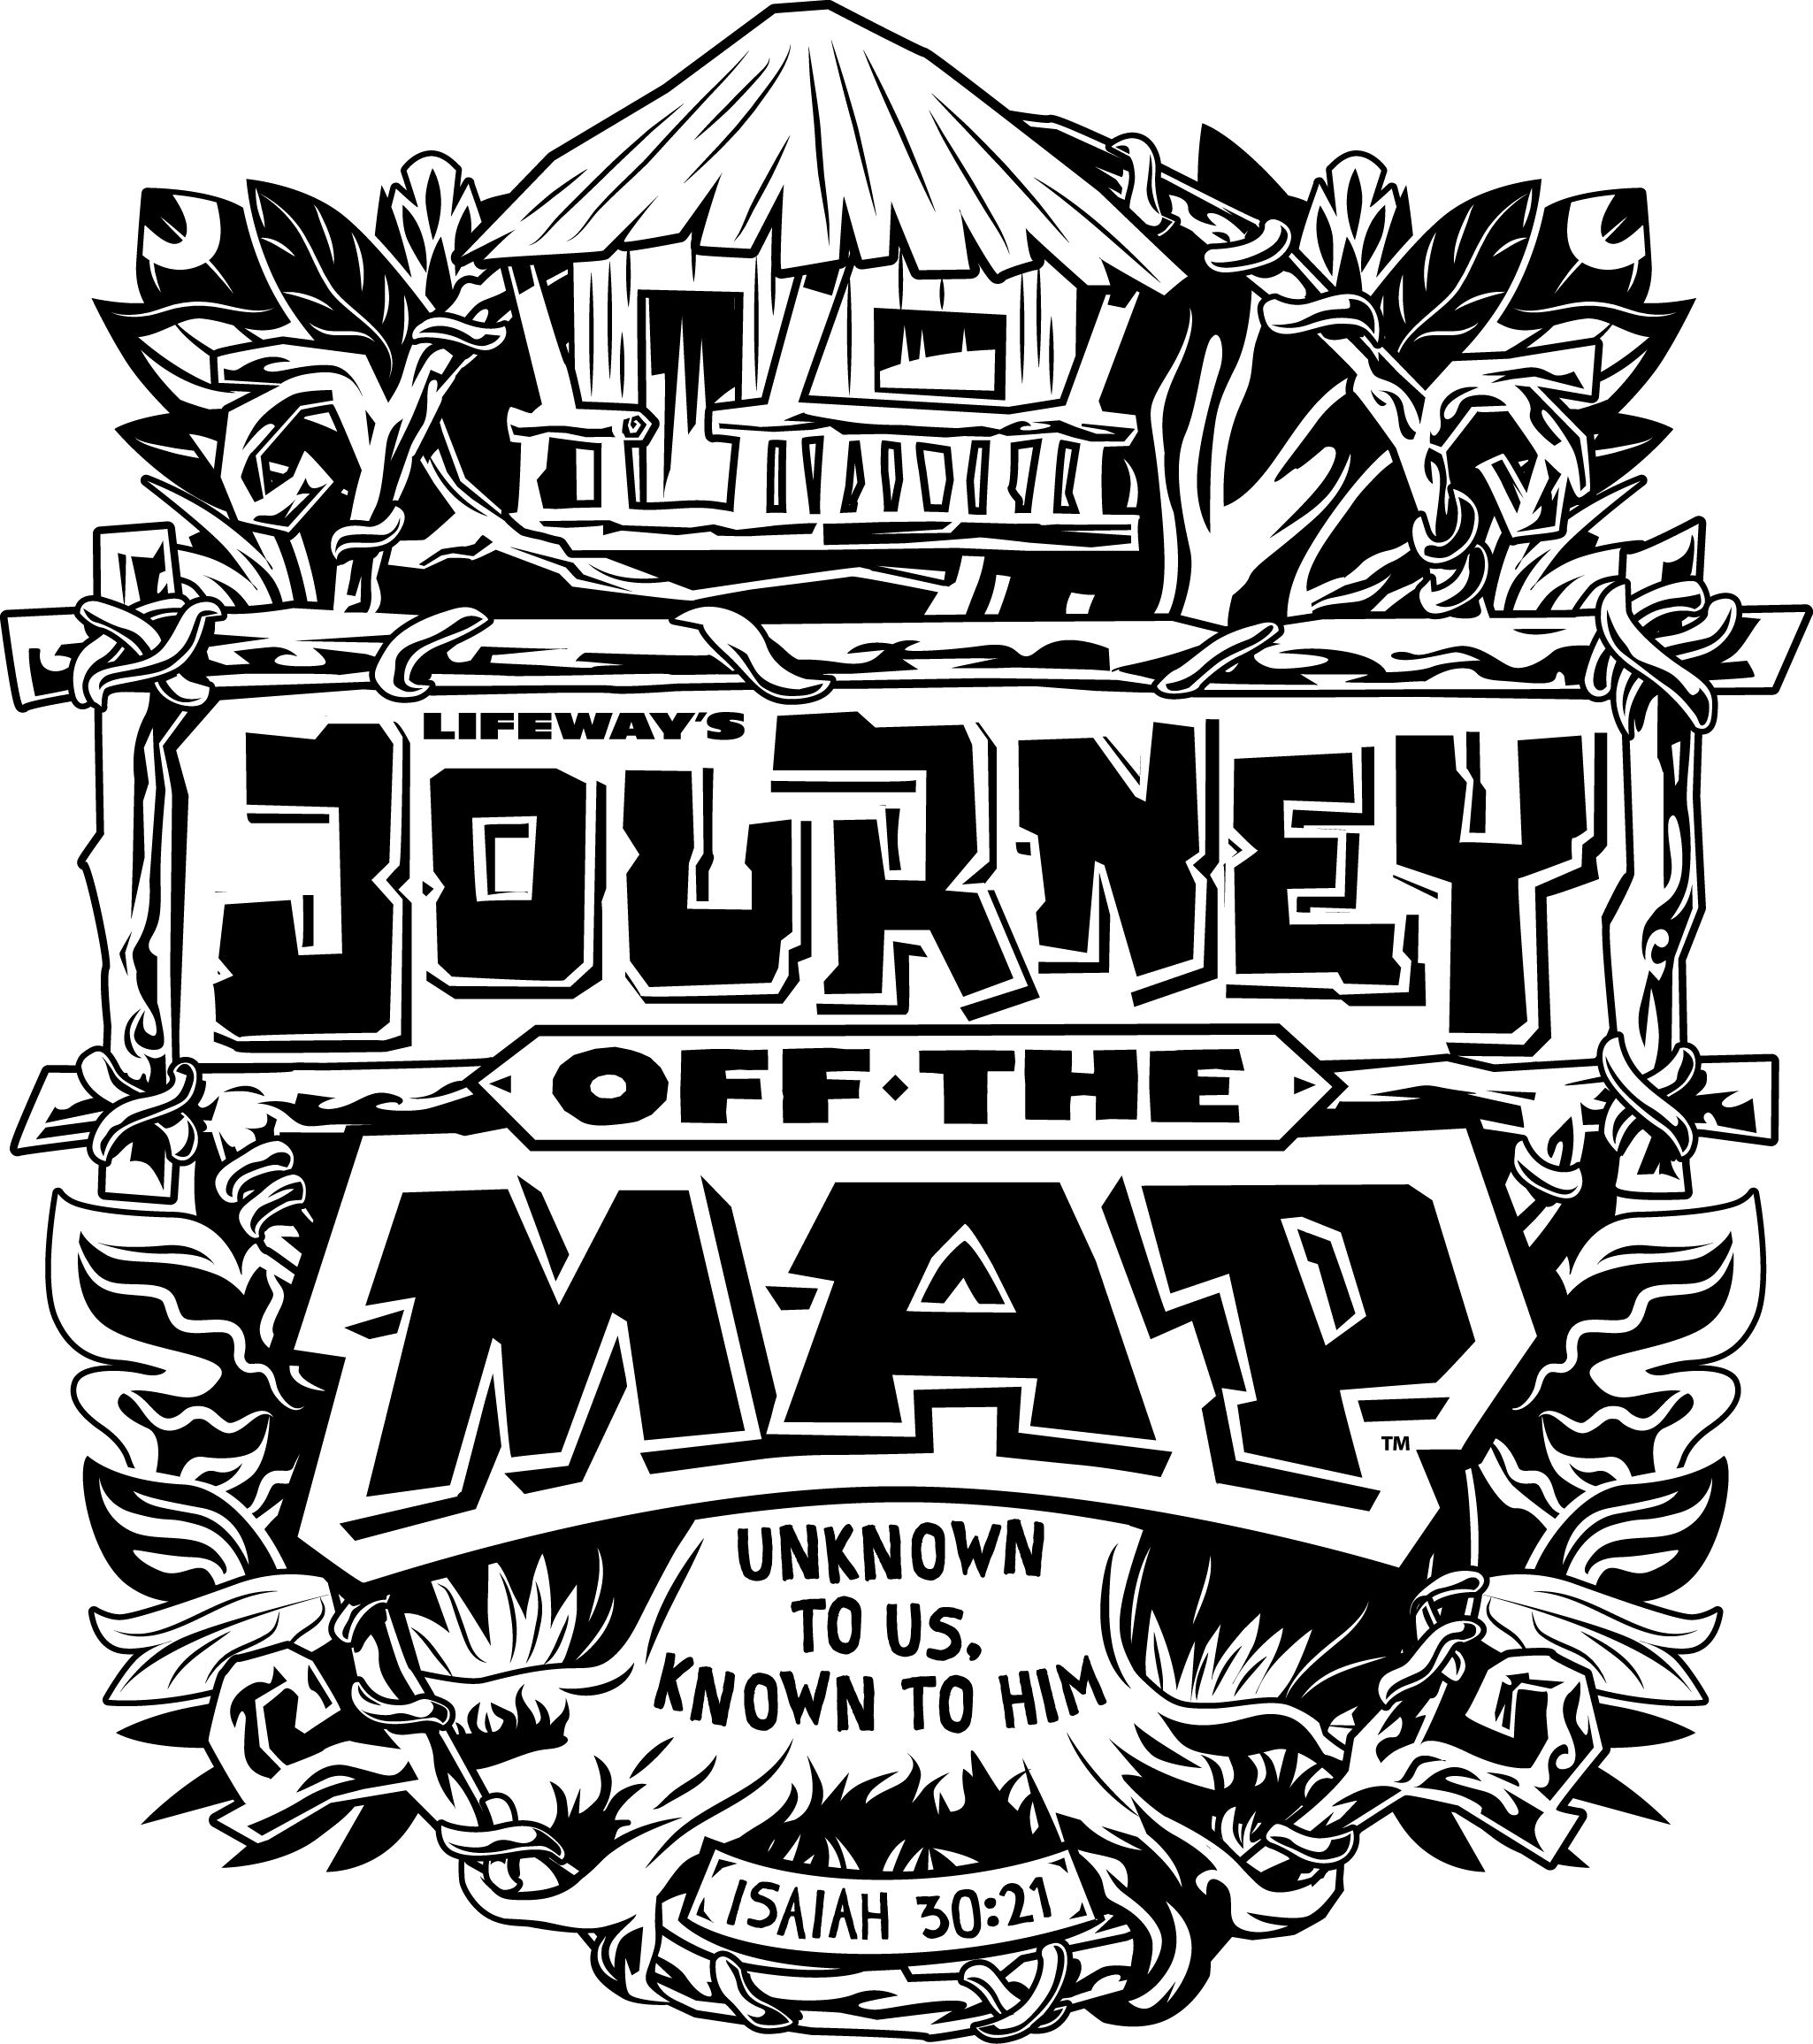 journey off the map vbs 2015 clipart.